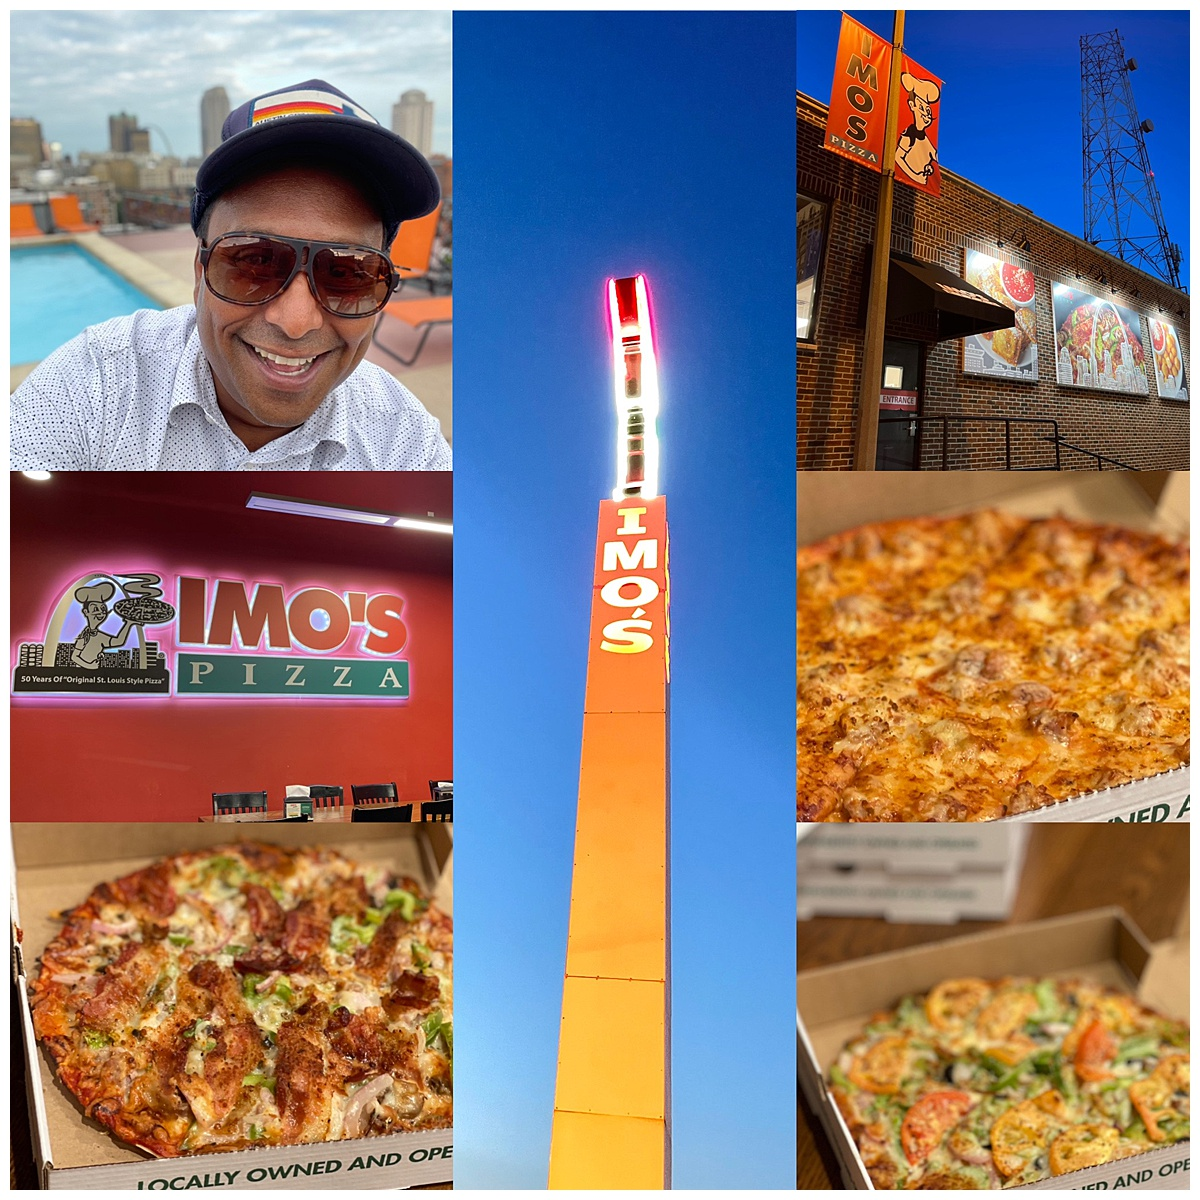 Imo's Pizza montage